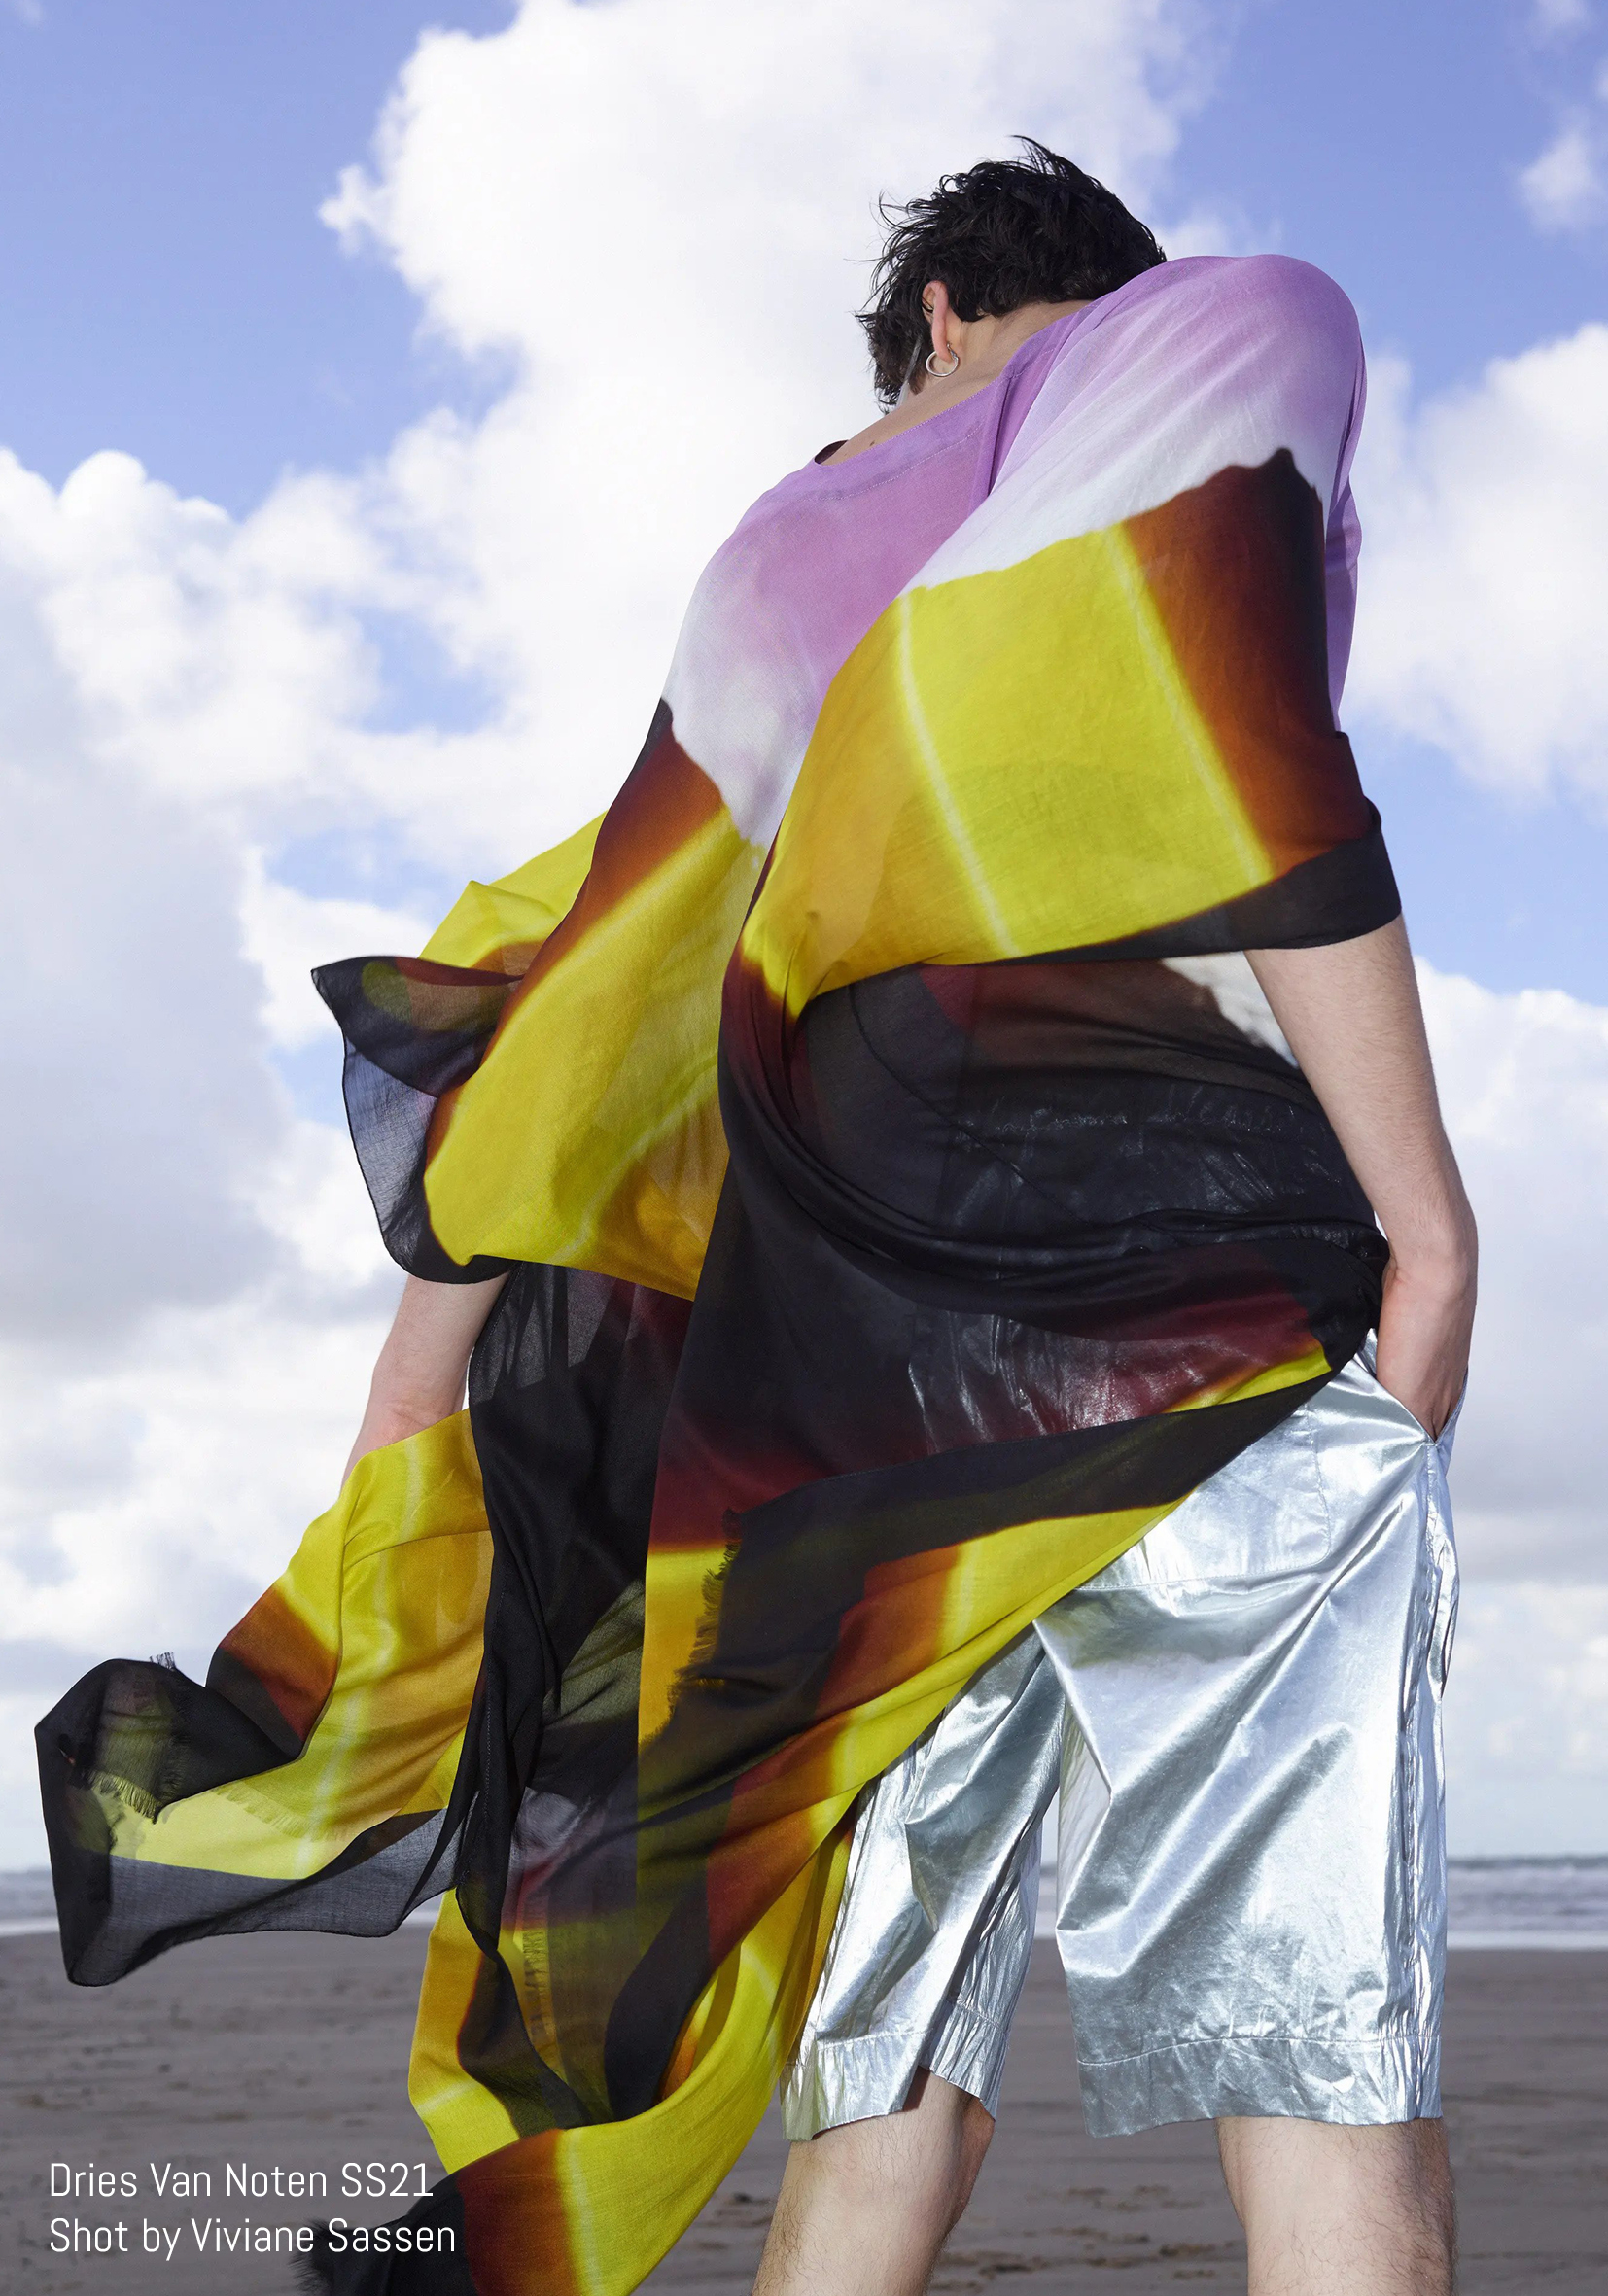 Model poses in psychedelic top for Dries Van Noten SS21 Shot by Viviane Sassen